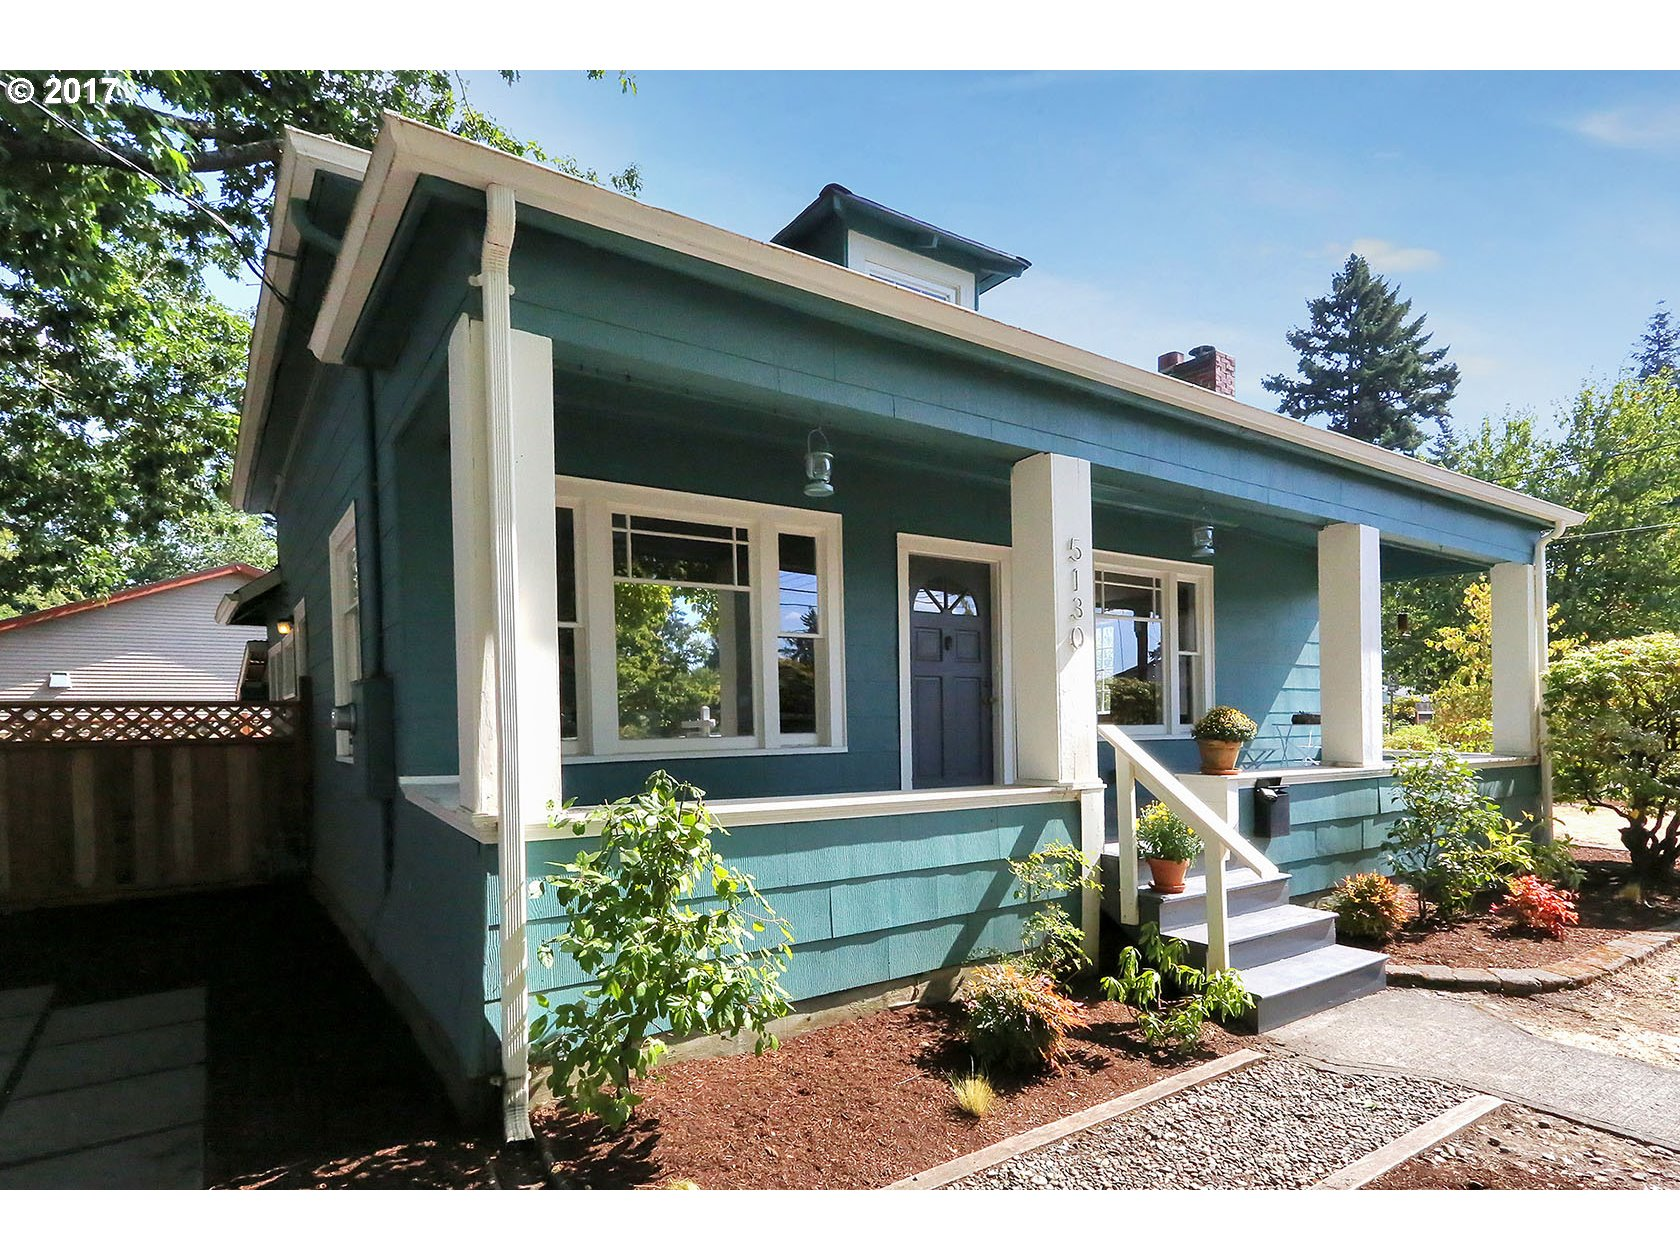 1644 sq. ft 2 bedrooms 1 bathrooms  House For Sale,Portland, OR